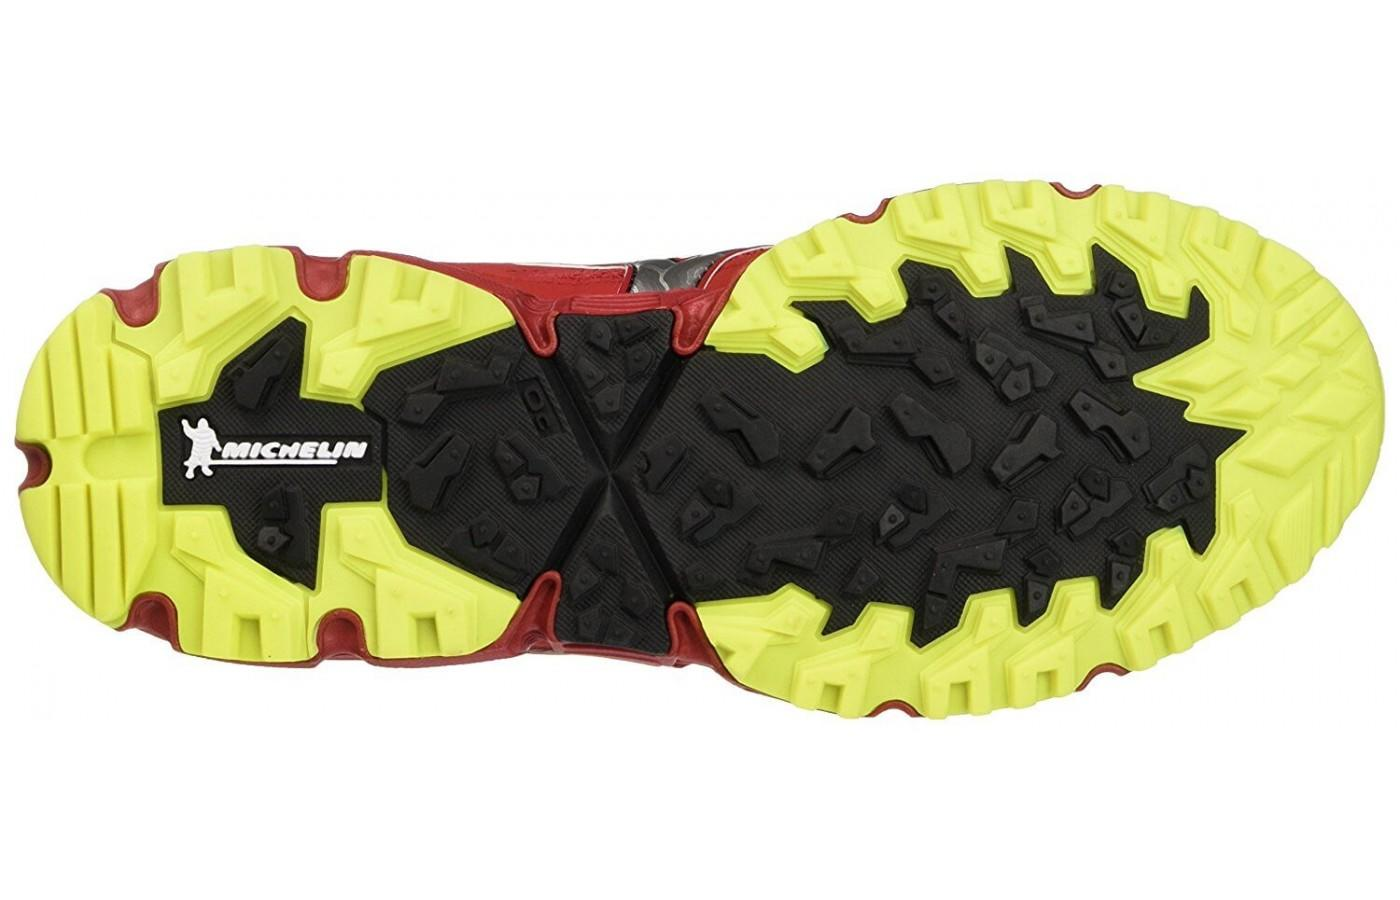 Here are the lugs on the Wave Daichi